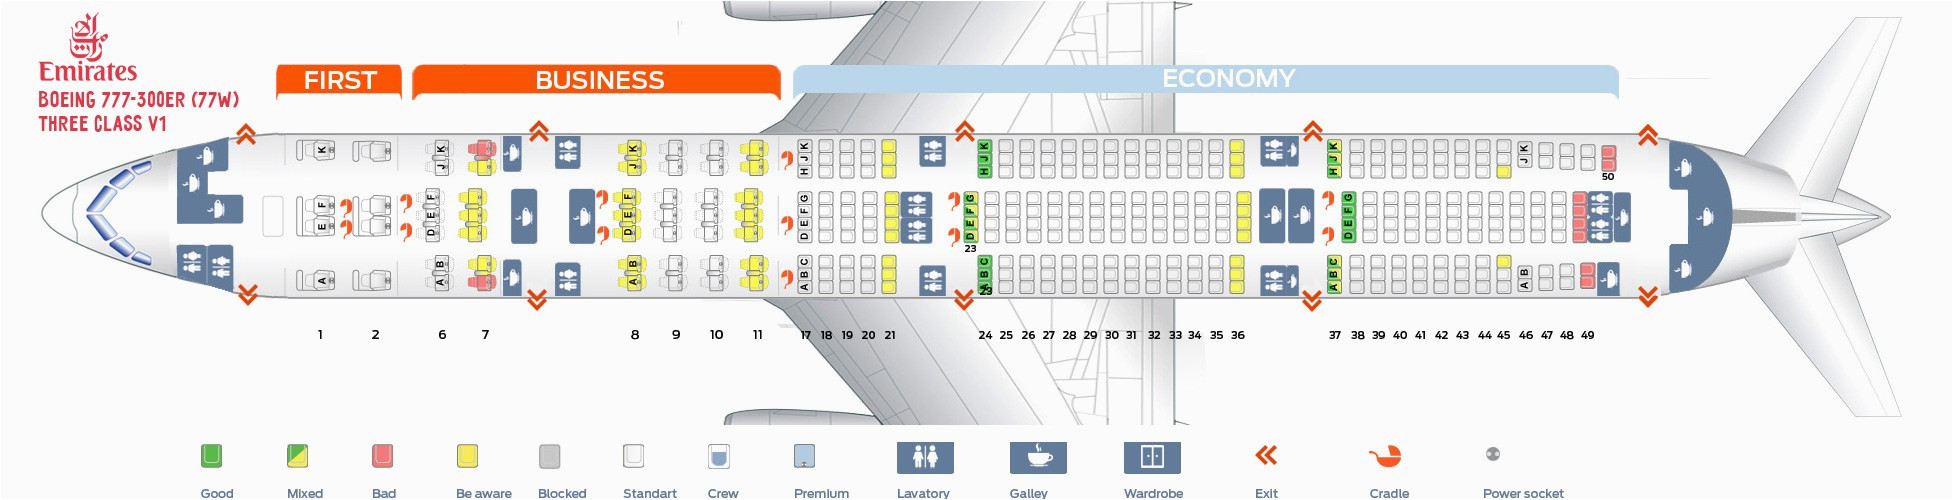 77w seat map